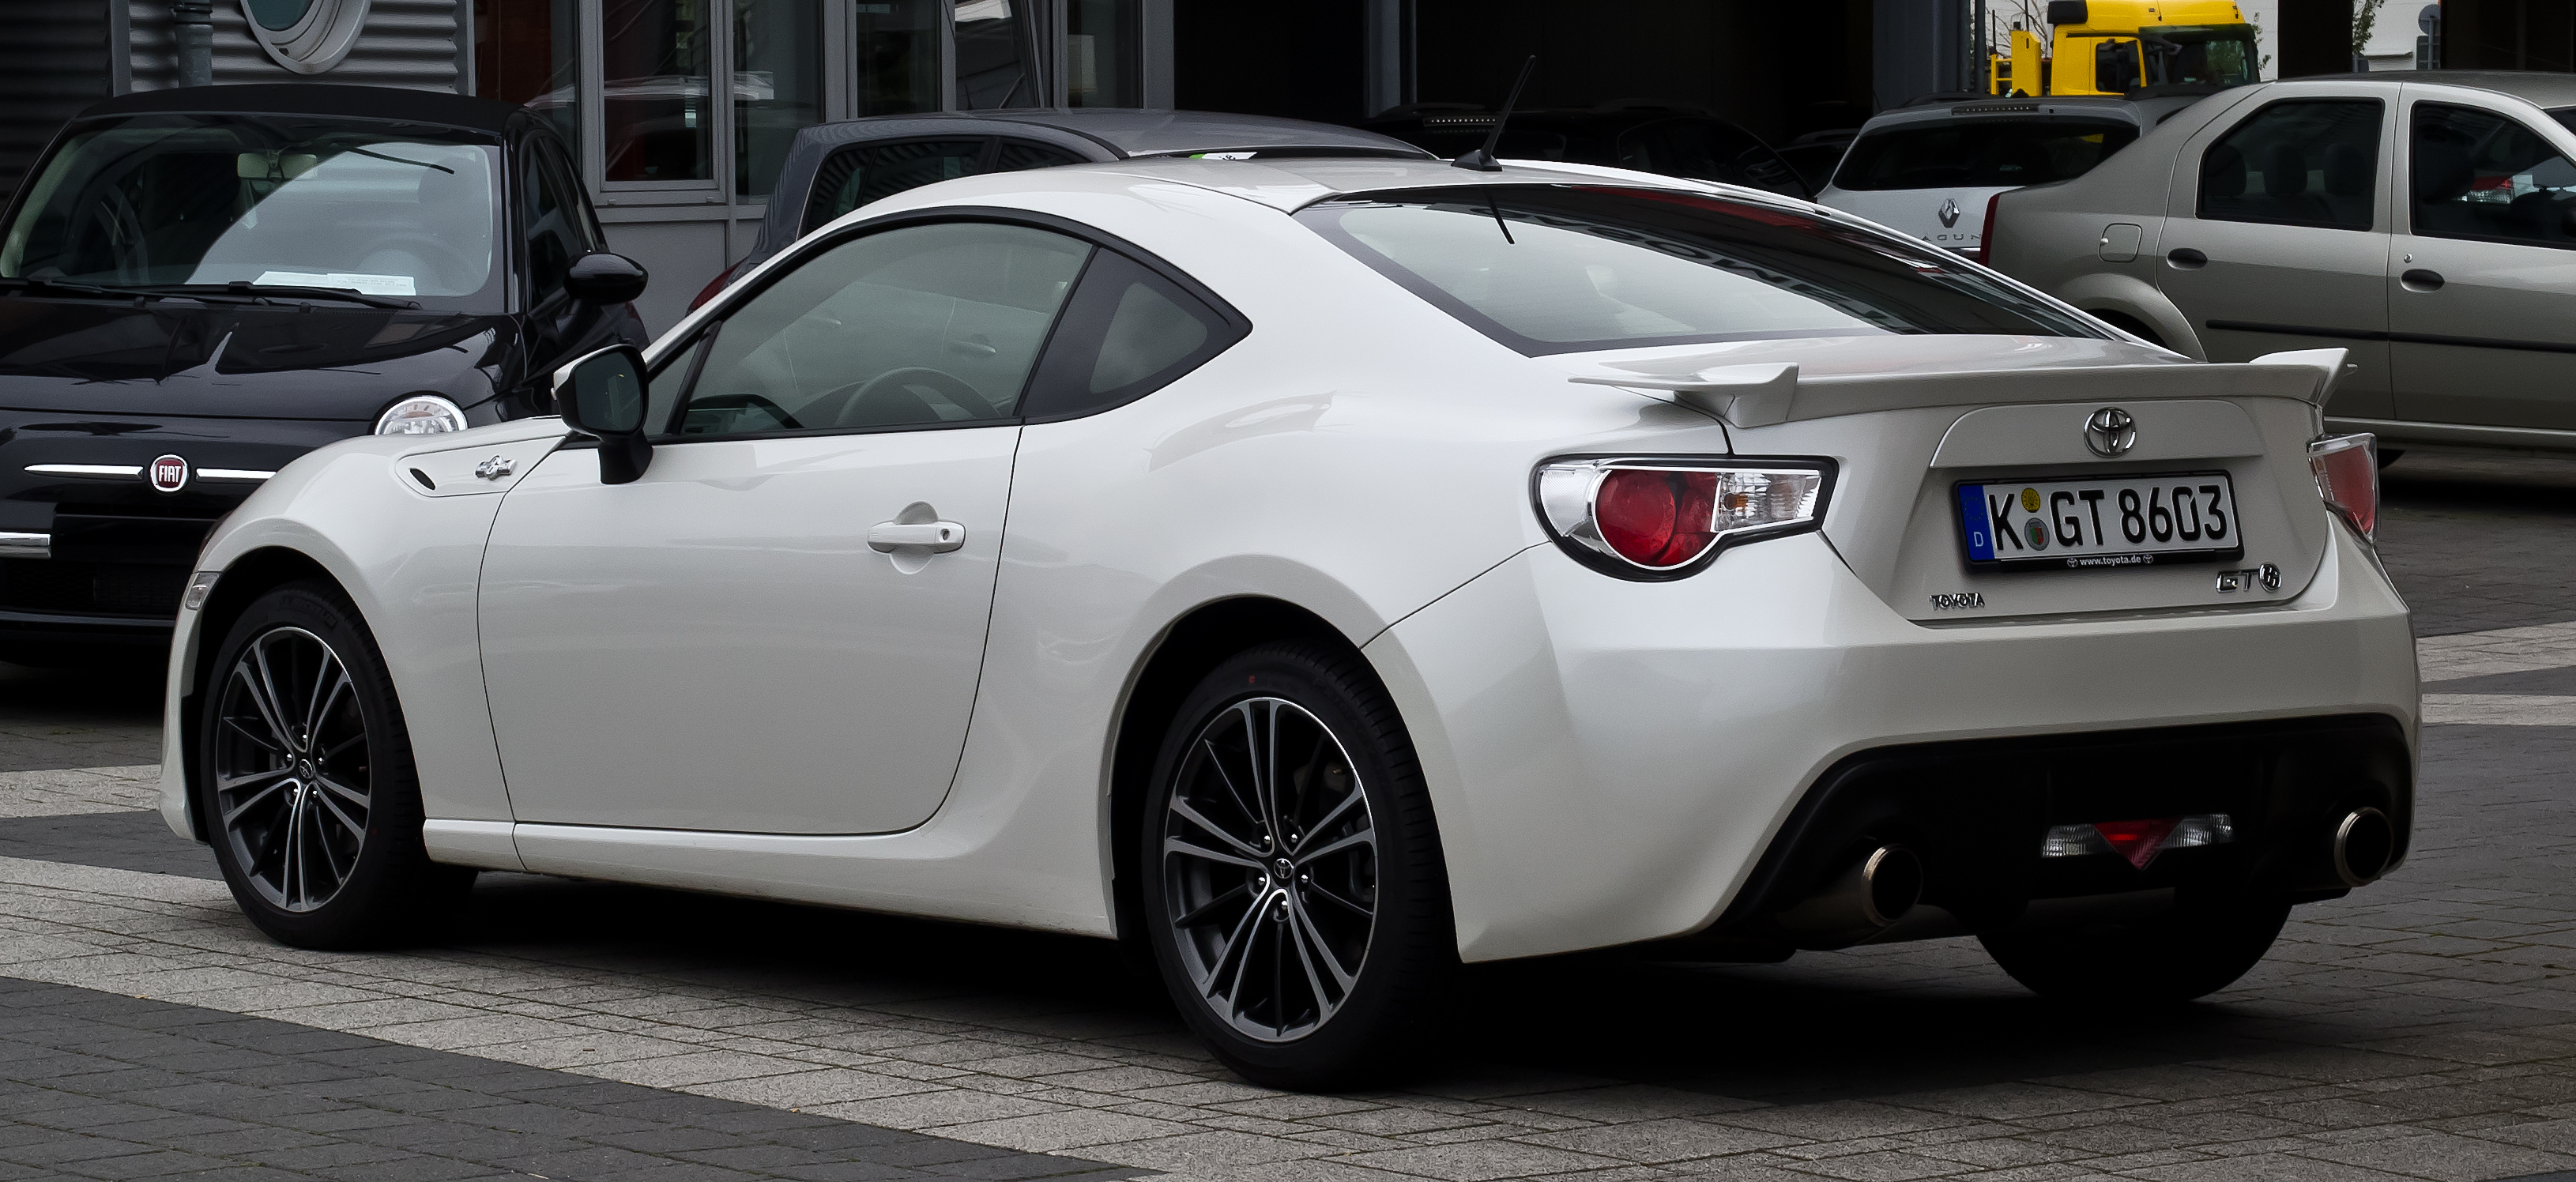 file toyota gt86 heckansicht 17 september 2012 d wikimedia commons. Black Bedroom Furniture Sets. Home Design Ideas